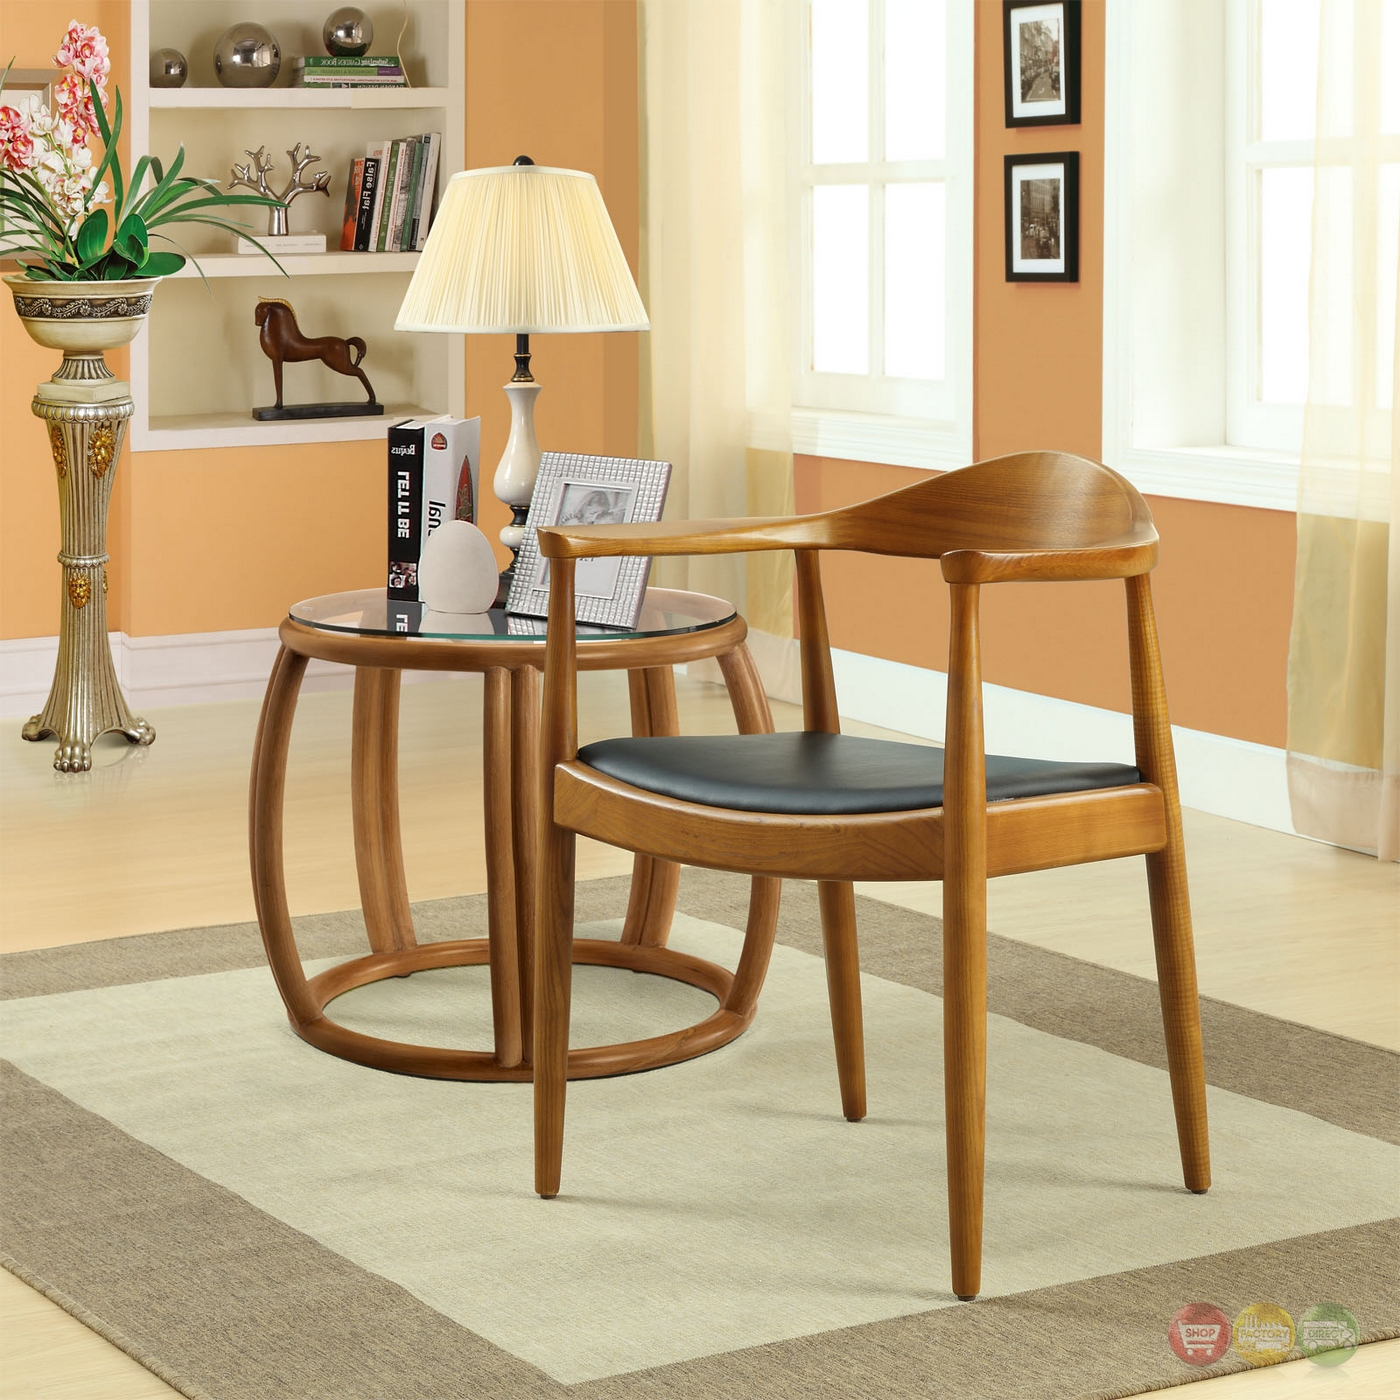 wooden dining chairs with cushions kashiori